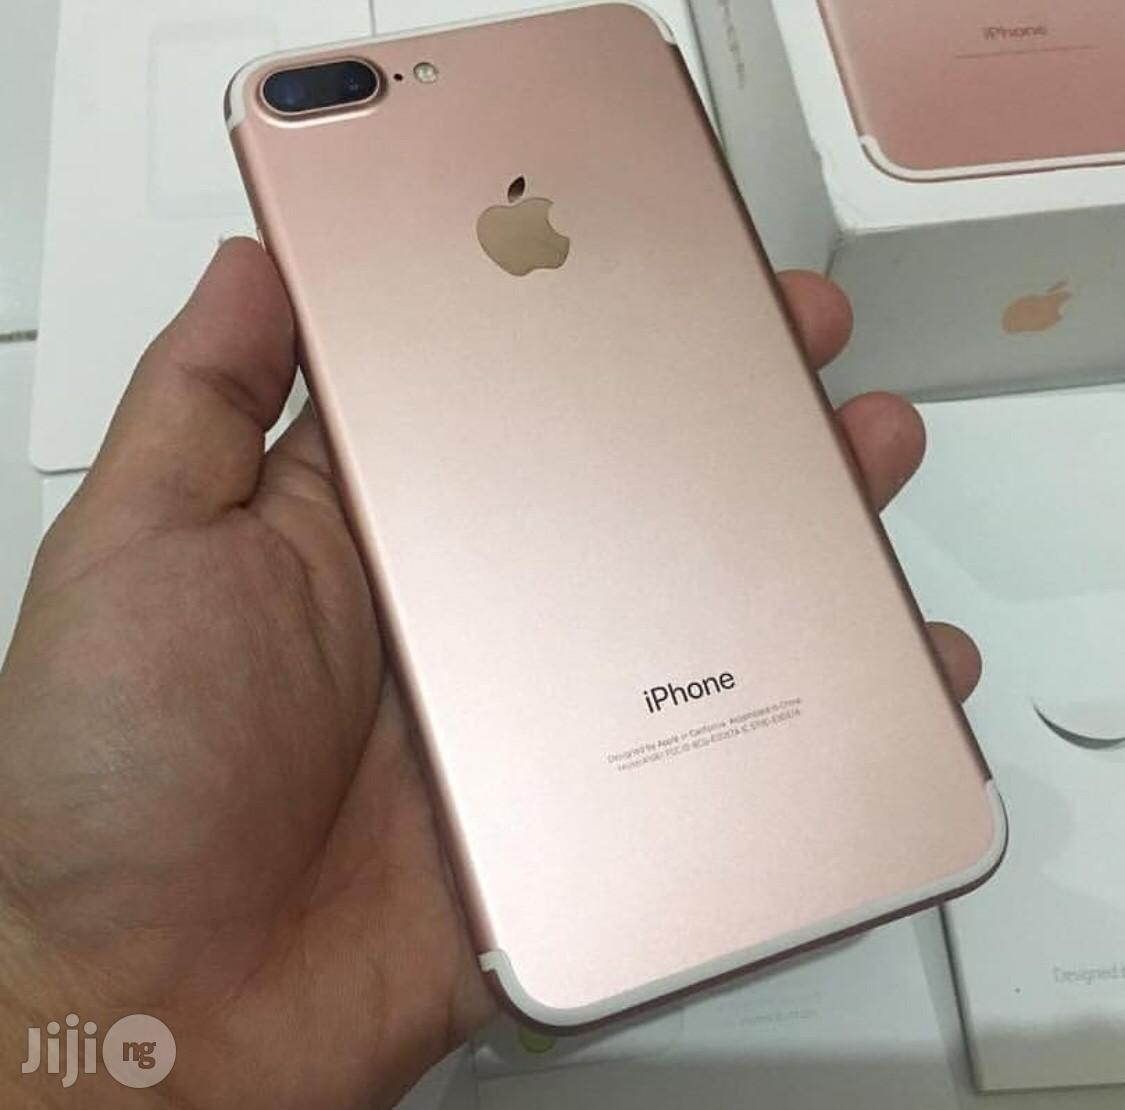 Apple iPhone 7 Plus 128 GB Gold   Mobile Phones for sale in Port-Harcourt, Rivers State, Nigeria